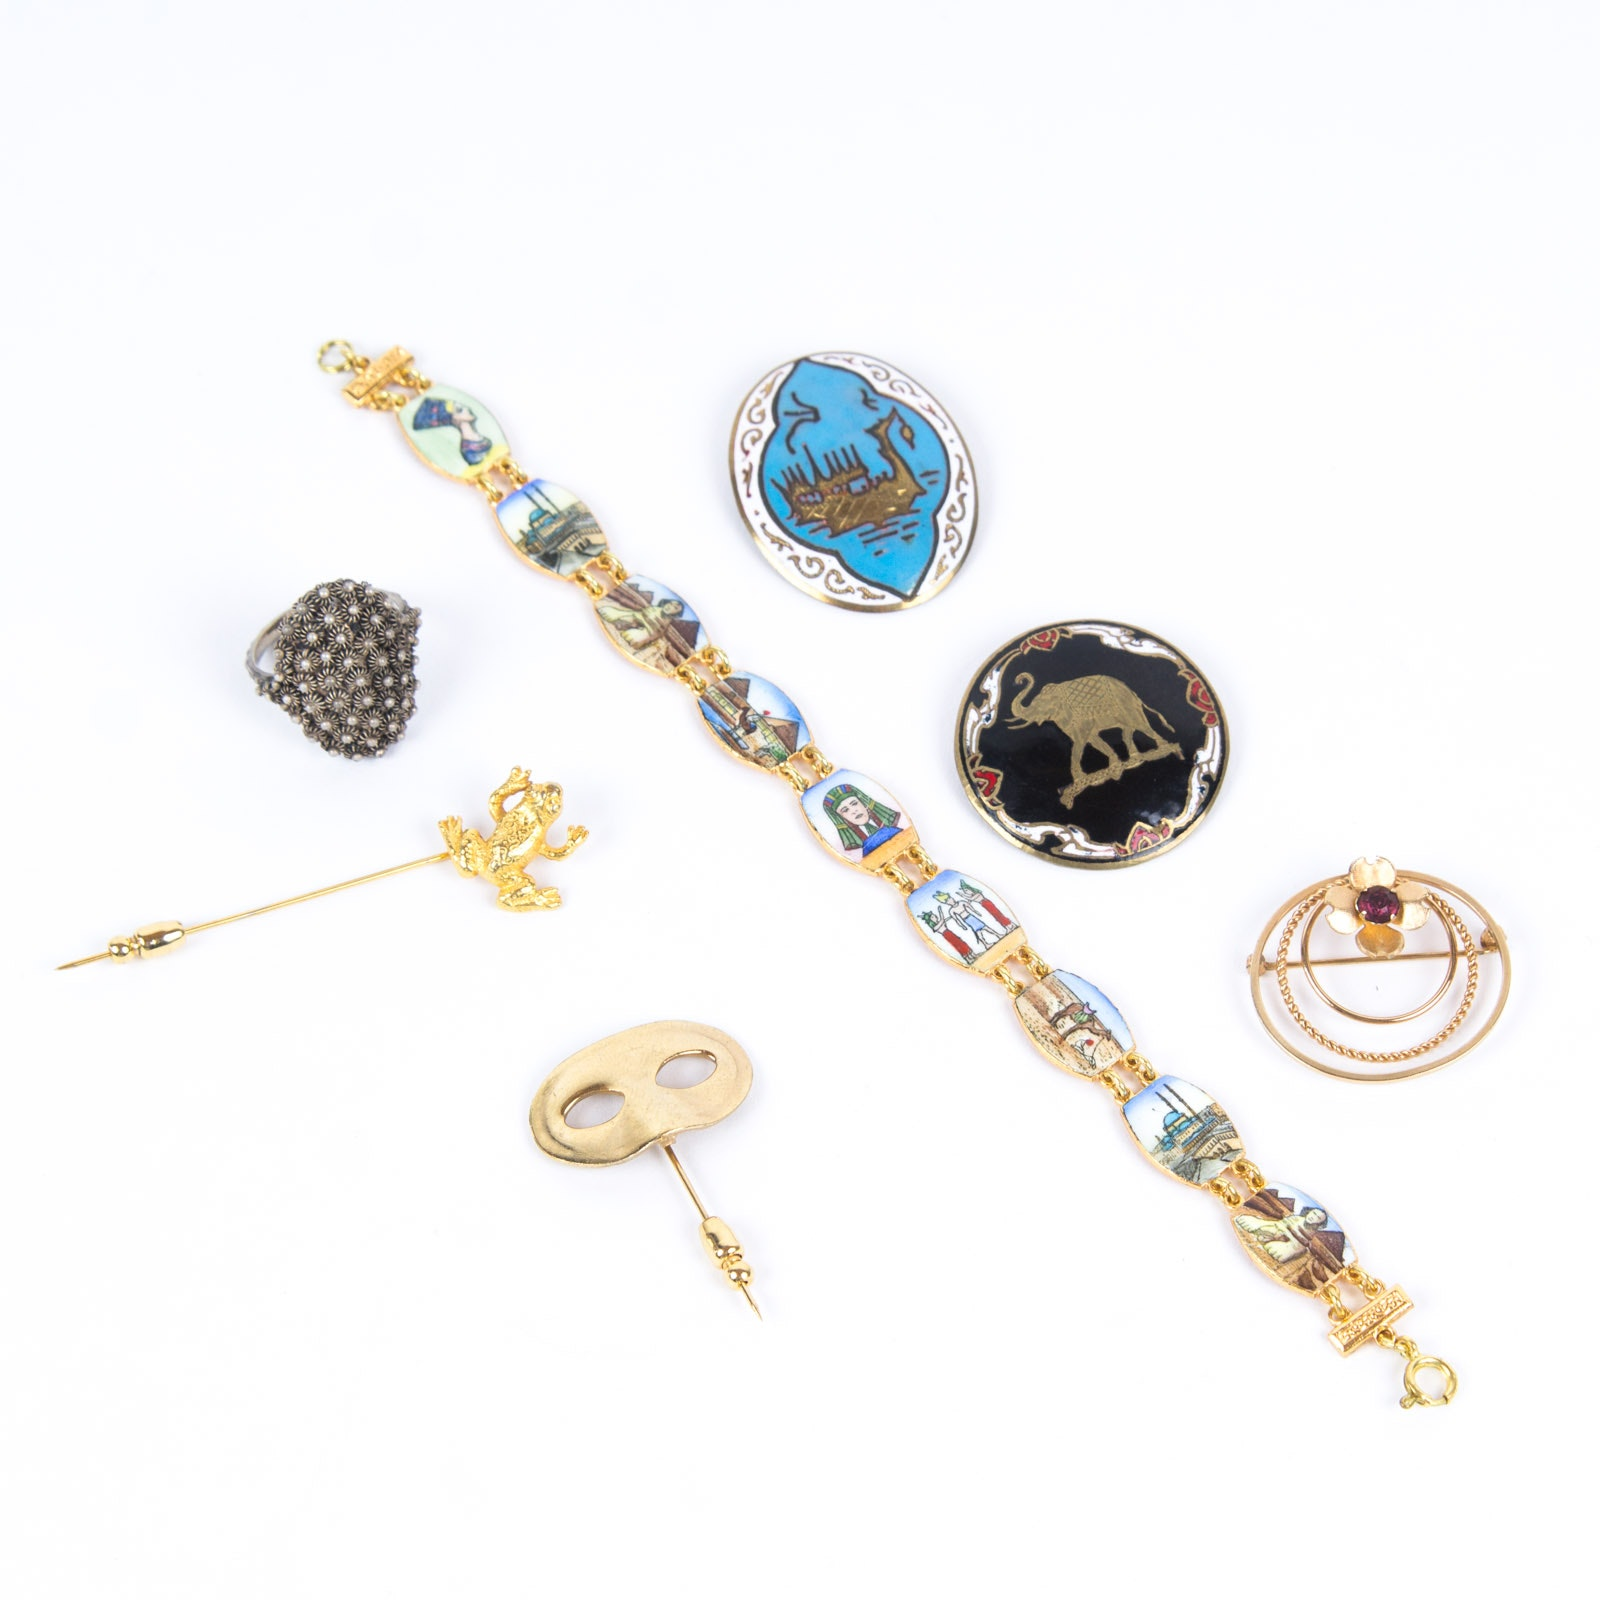 Jewelry Selection Including Sterling Silver